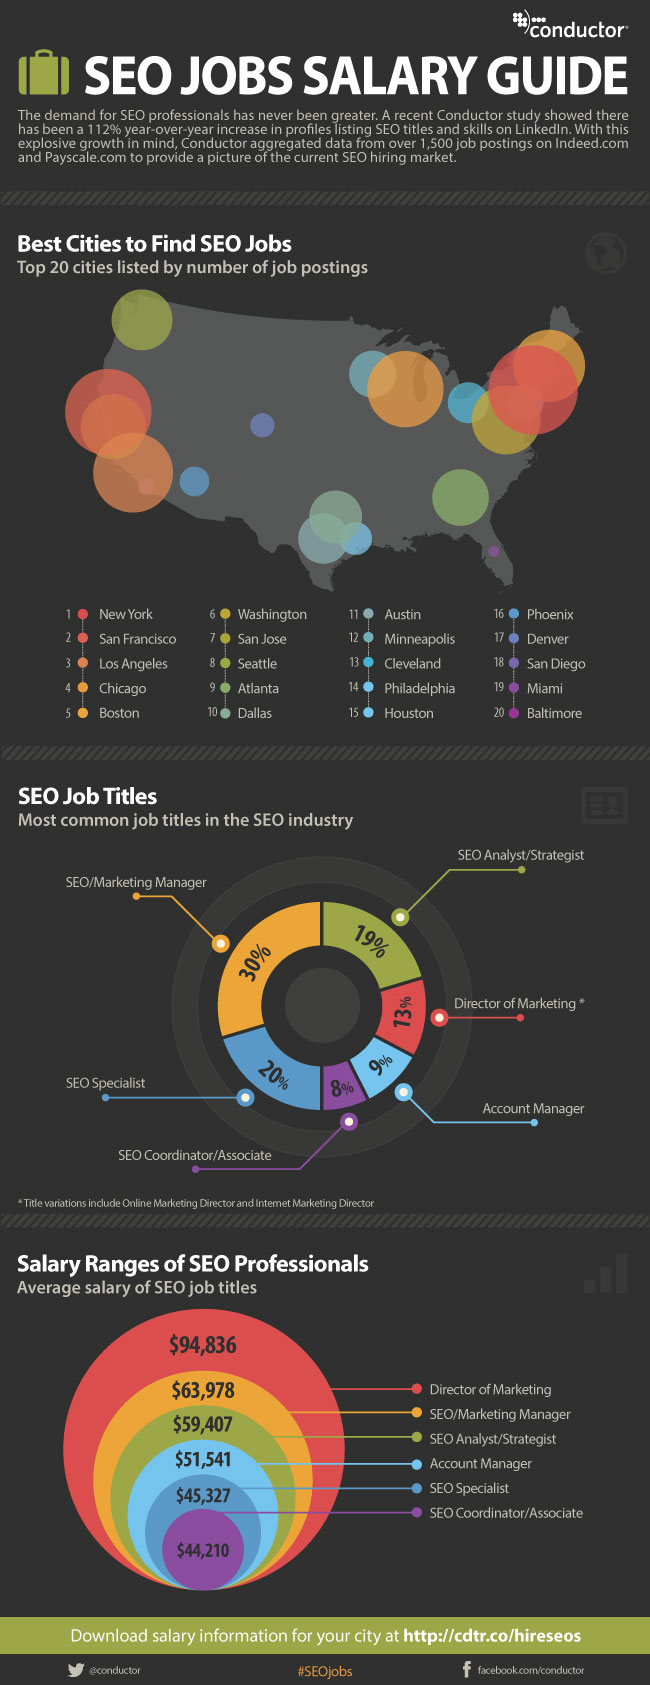 conductor-seo-jobs-infographic